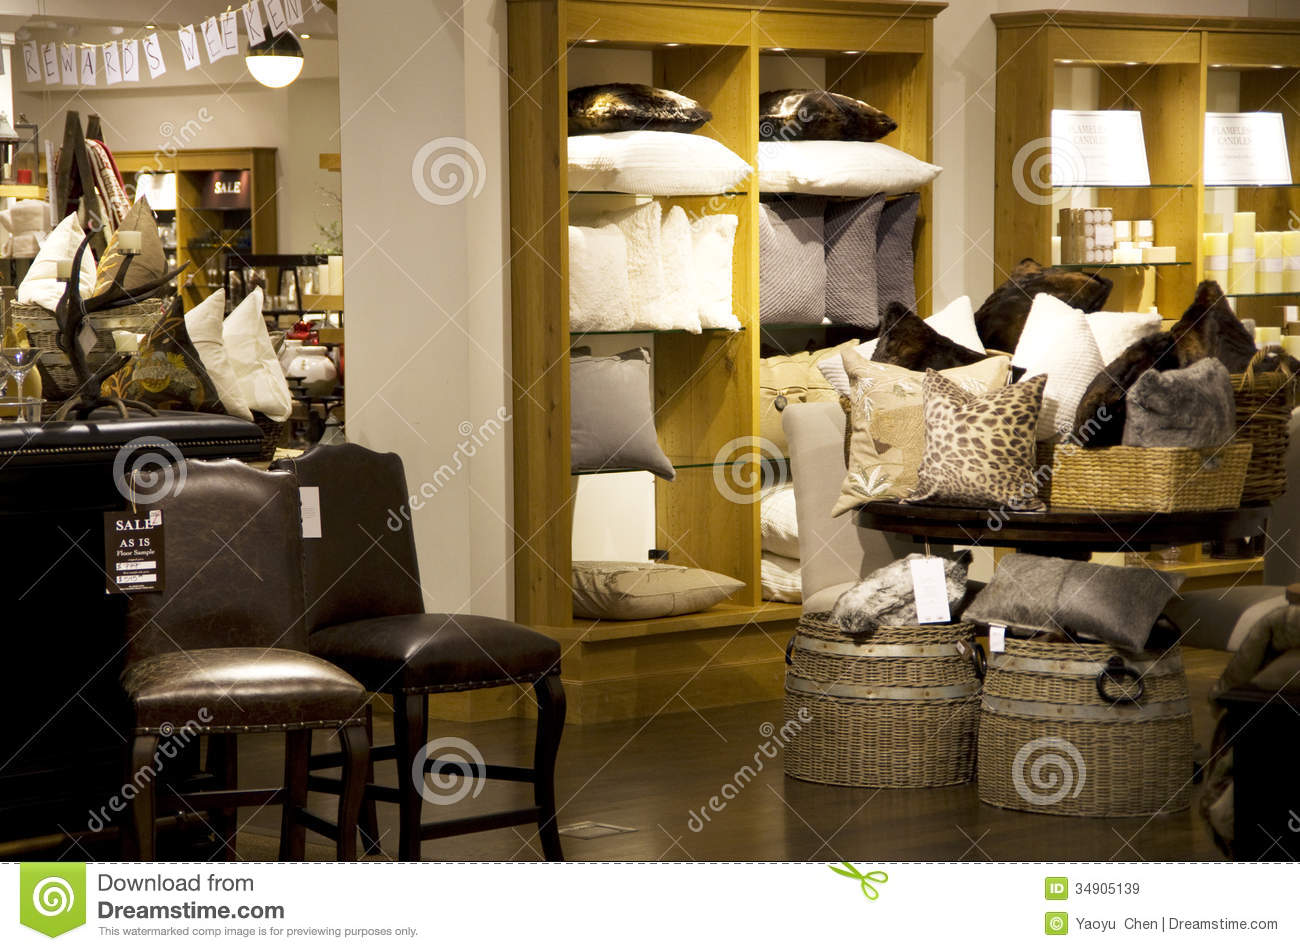 Home Goods Store Stock Image Image Of Lighting Decor 34905139: home decor home goods